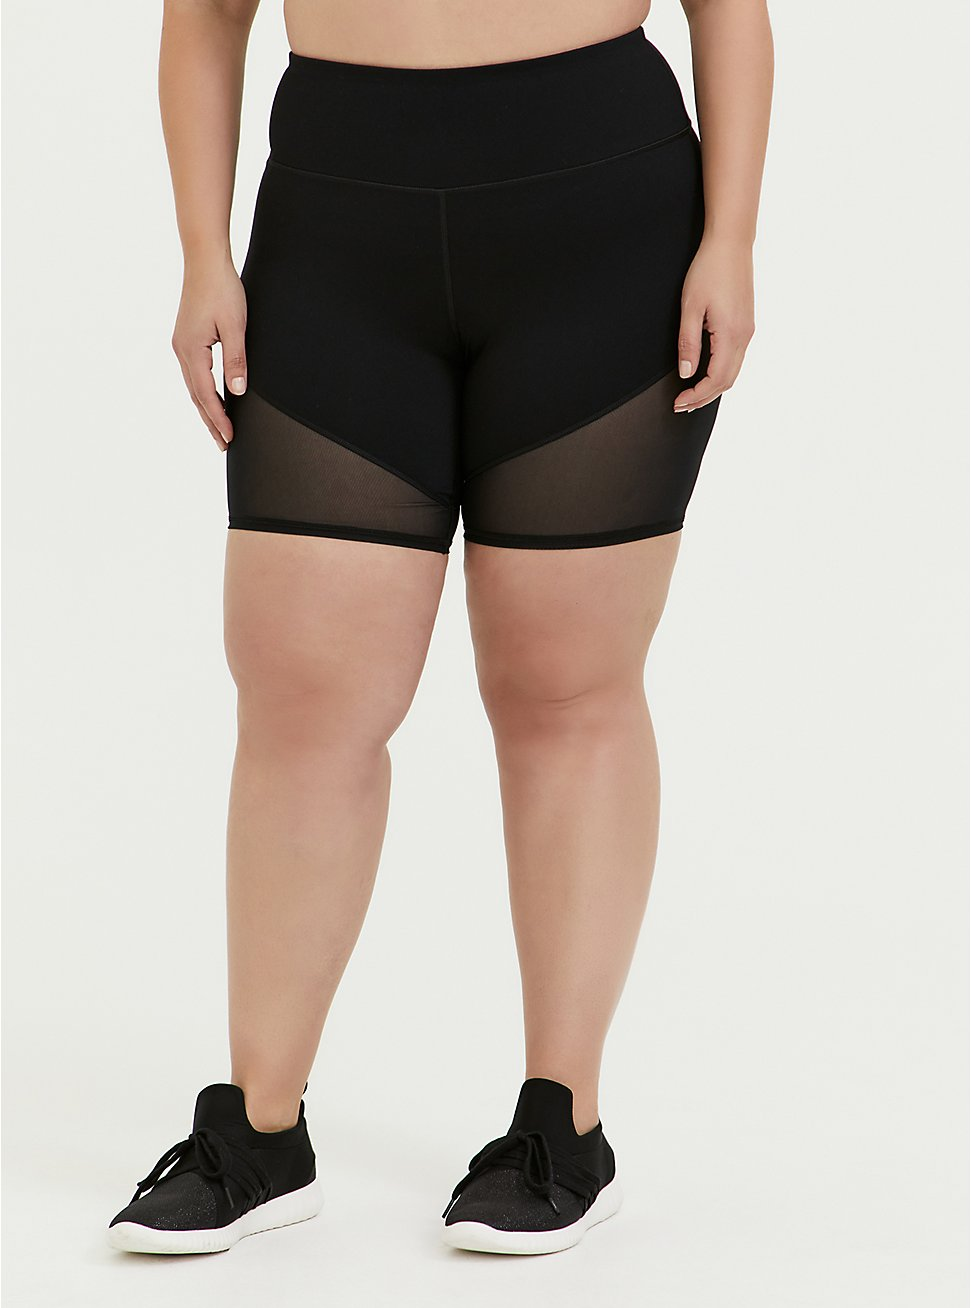 Black Mesh Inset Wicking Active Bike Short, DEEP BLACK, hi-res